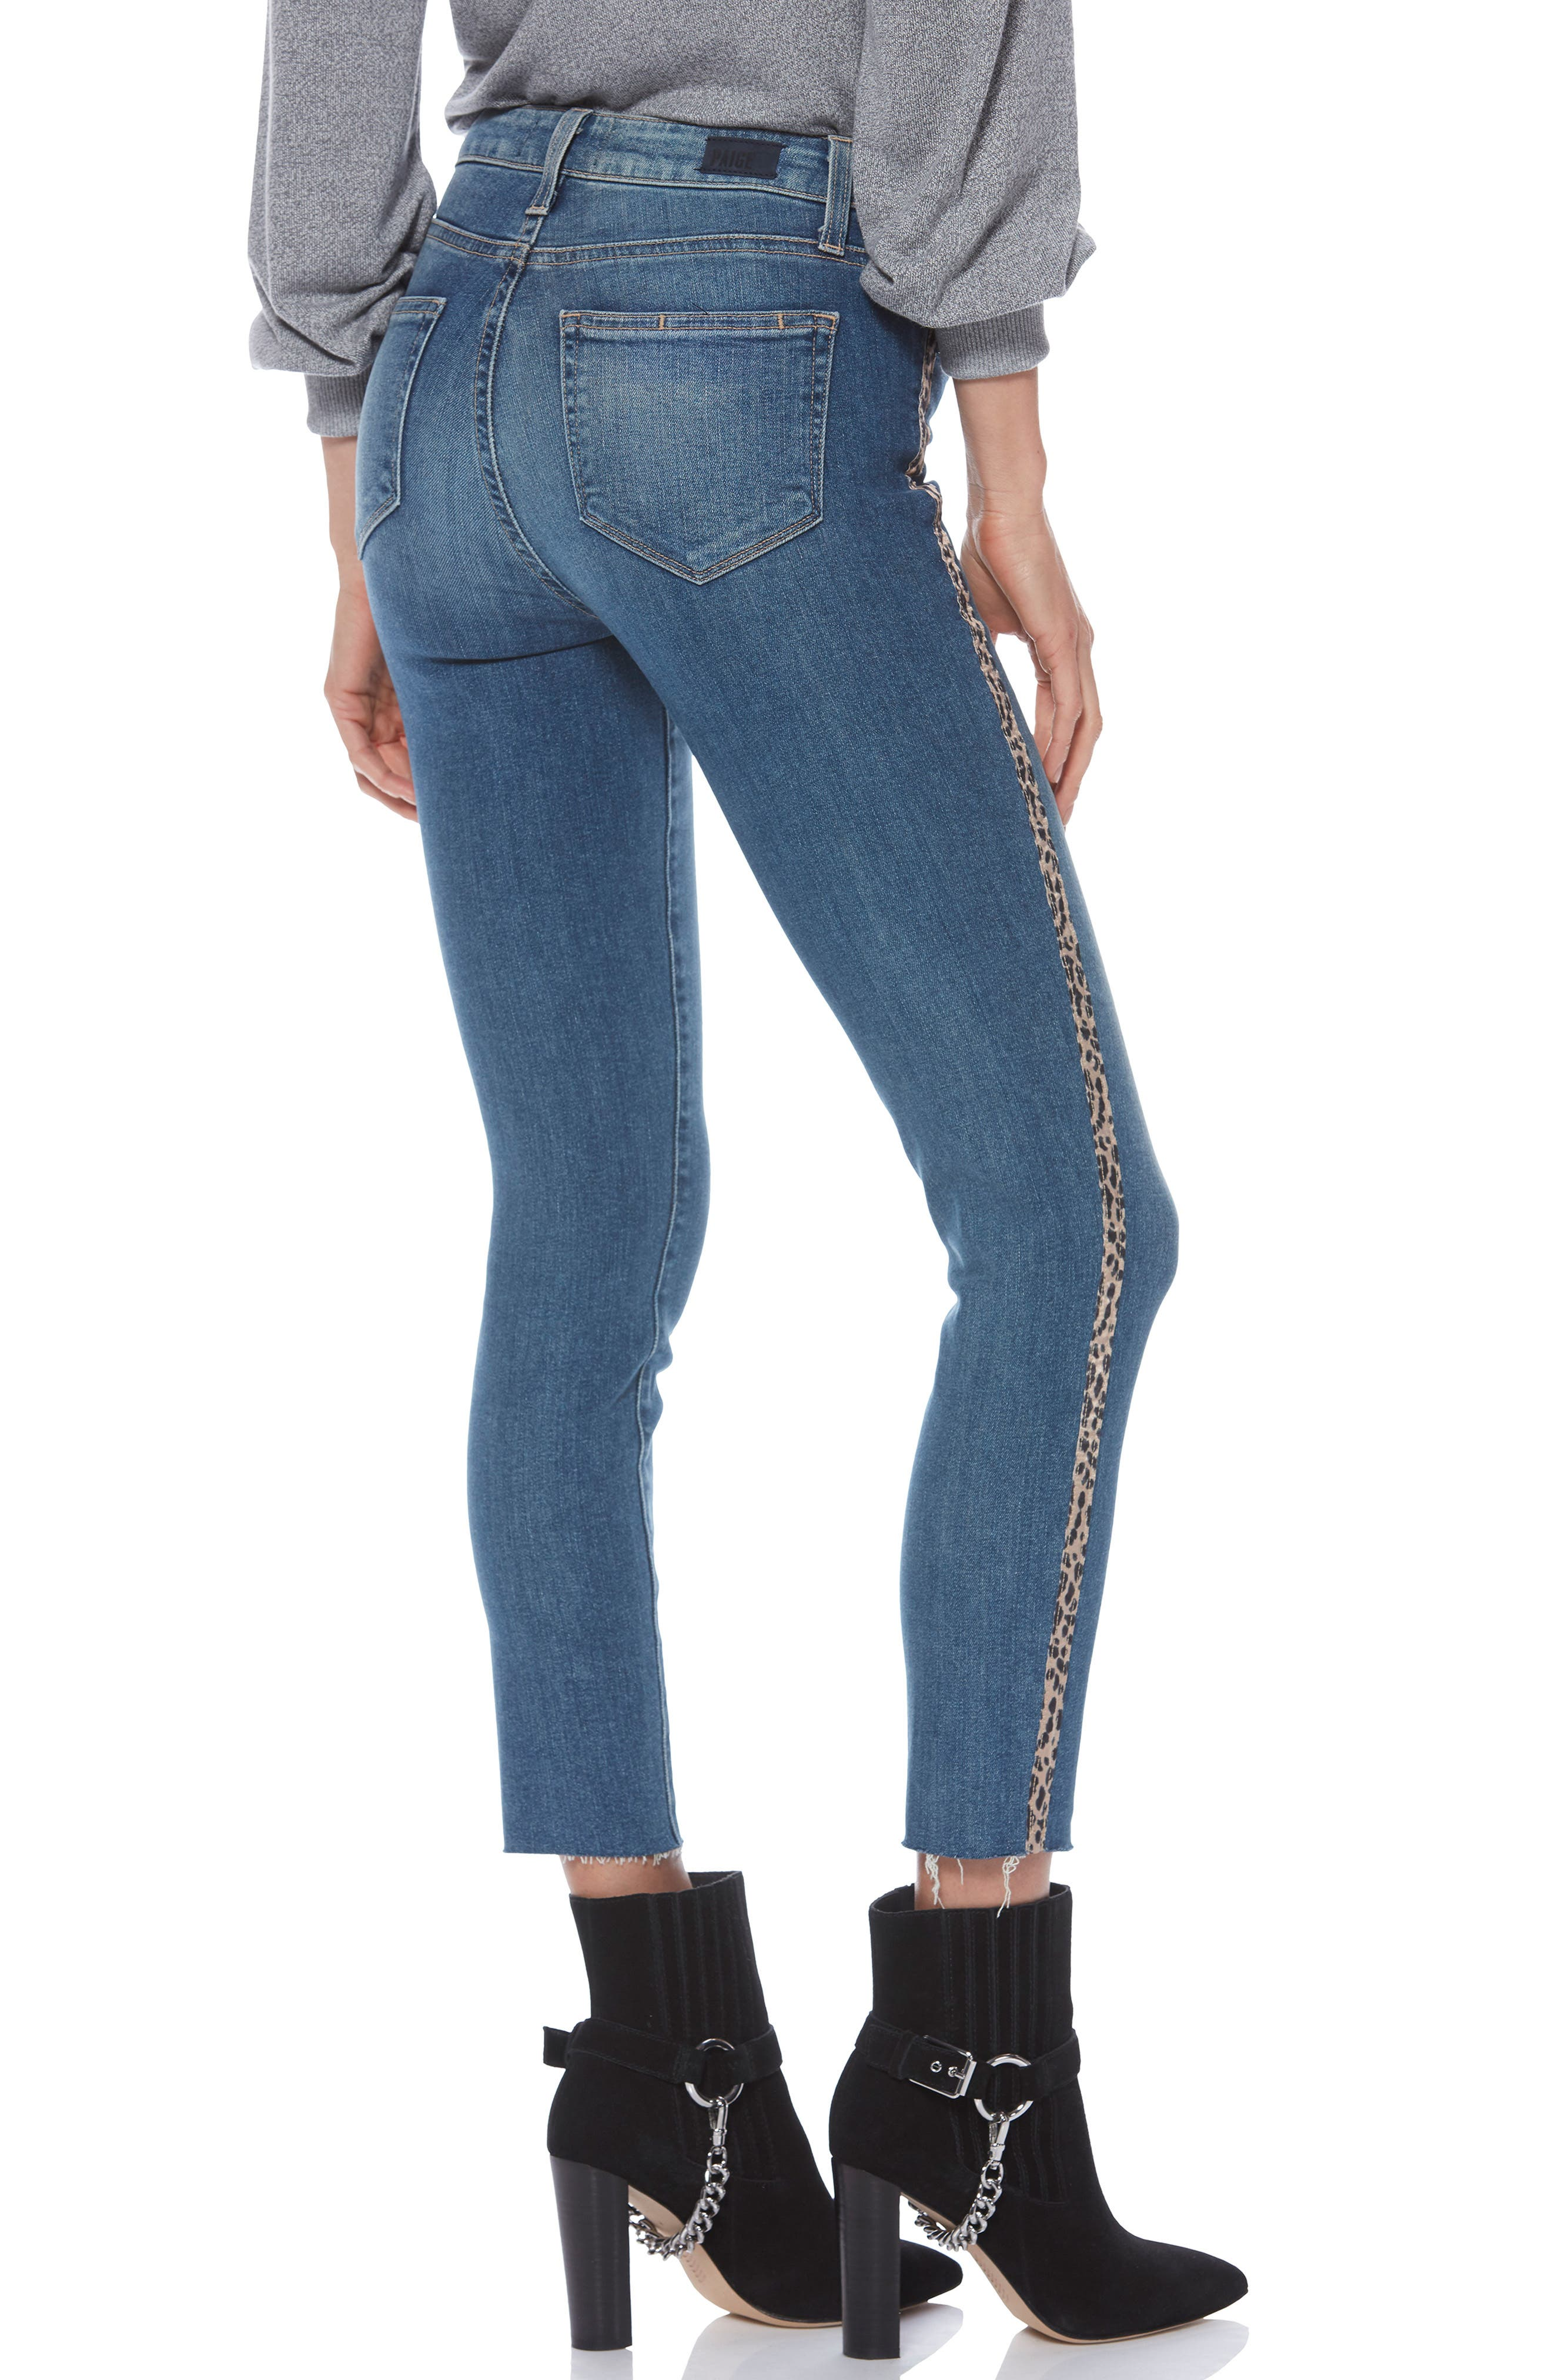 PAIGE, Hoxton High Waist Raw Hem Crop Skinny Jeans, Alternate thumbnail 2, color, BARKLEY W/ LEOPARD